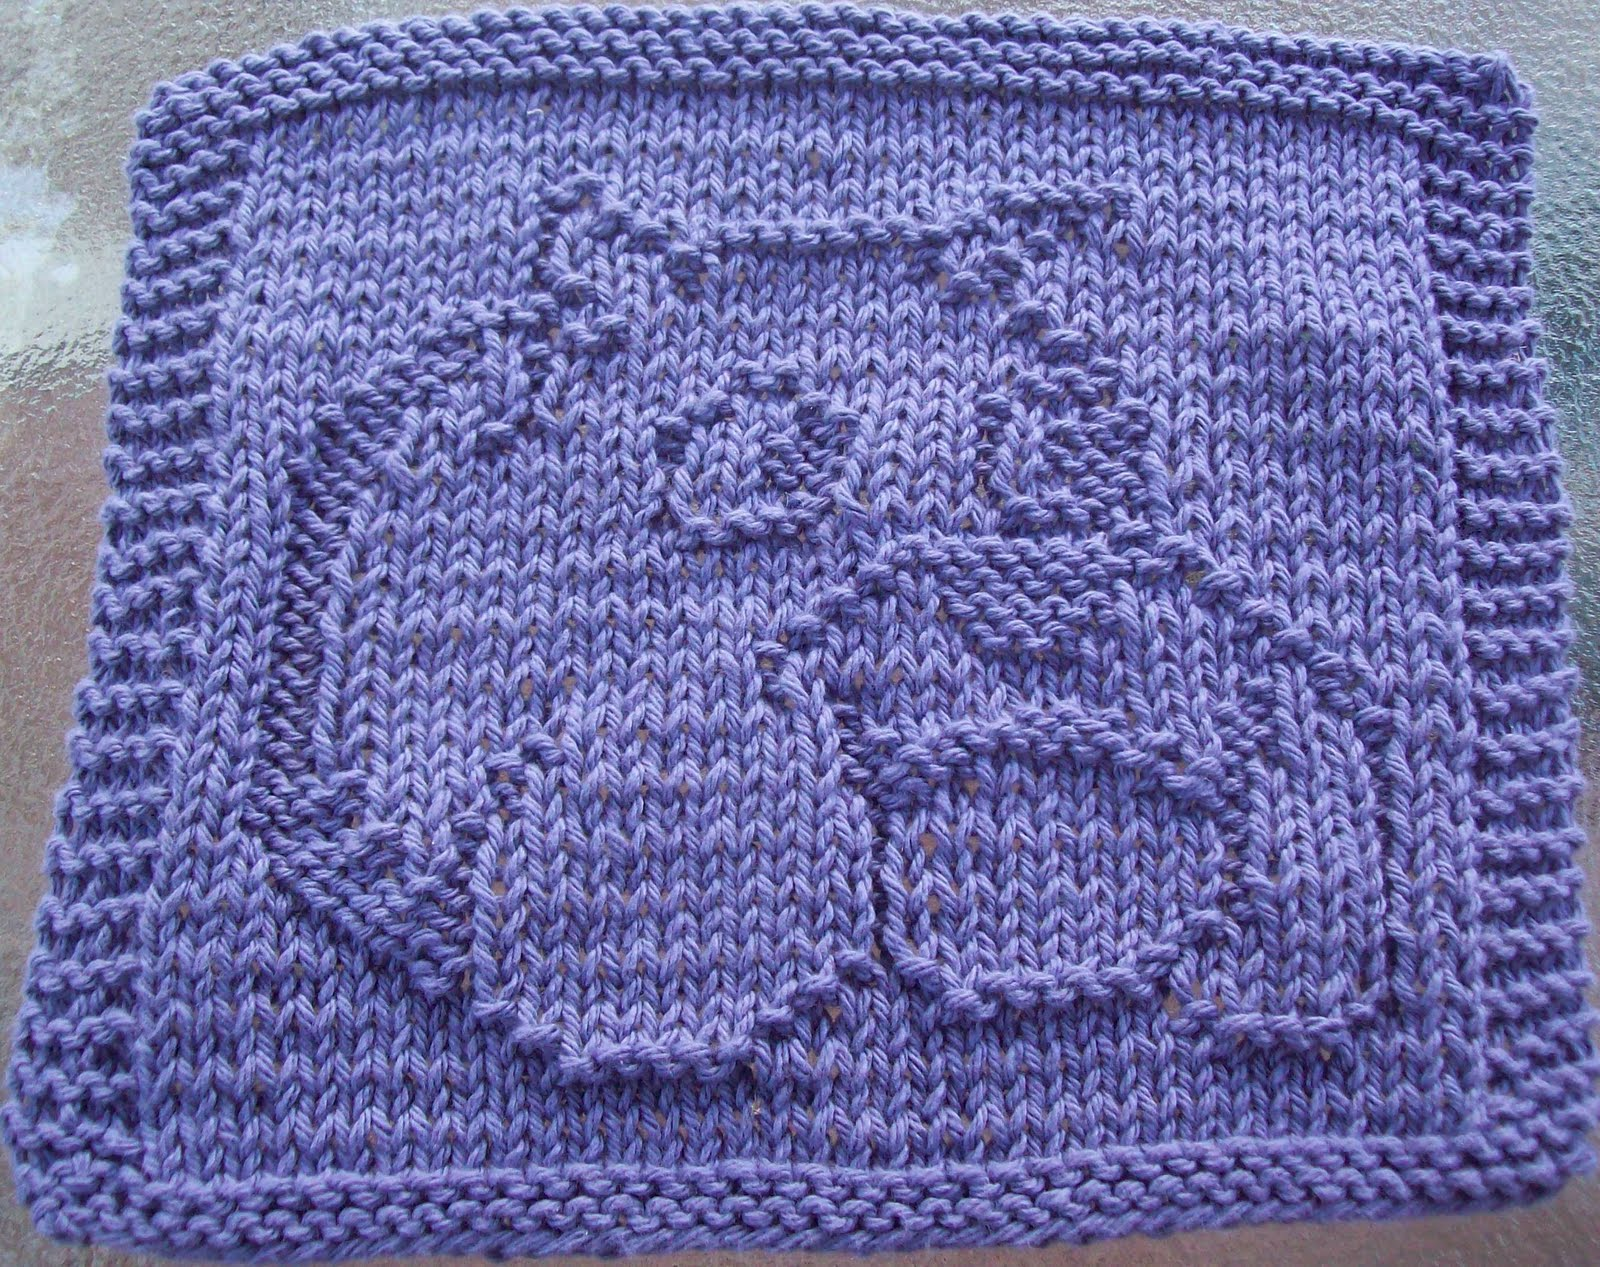 Knitted Dishcloth Patterns : DigKnitty Designs: Bulldog Knit Dishcloth Pattern